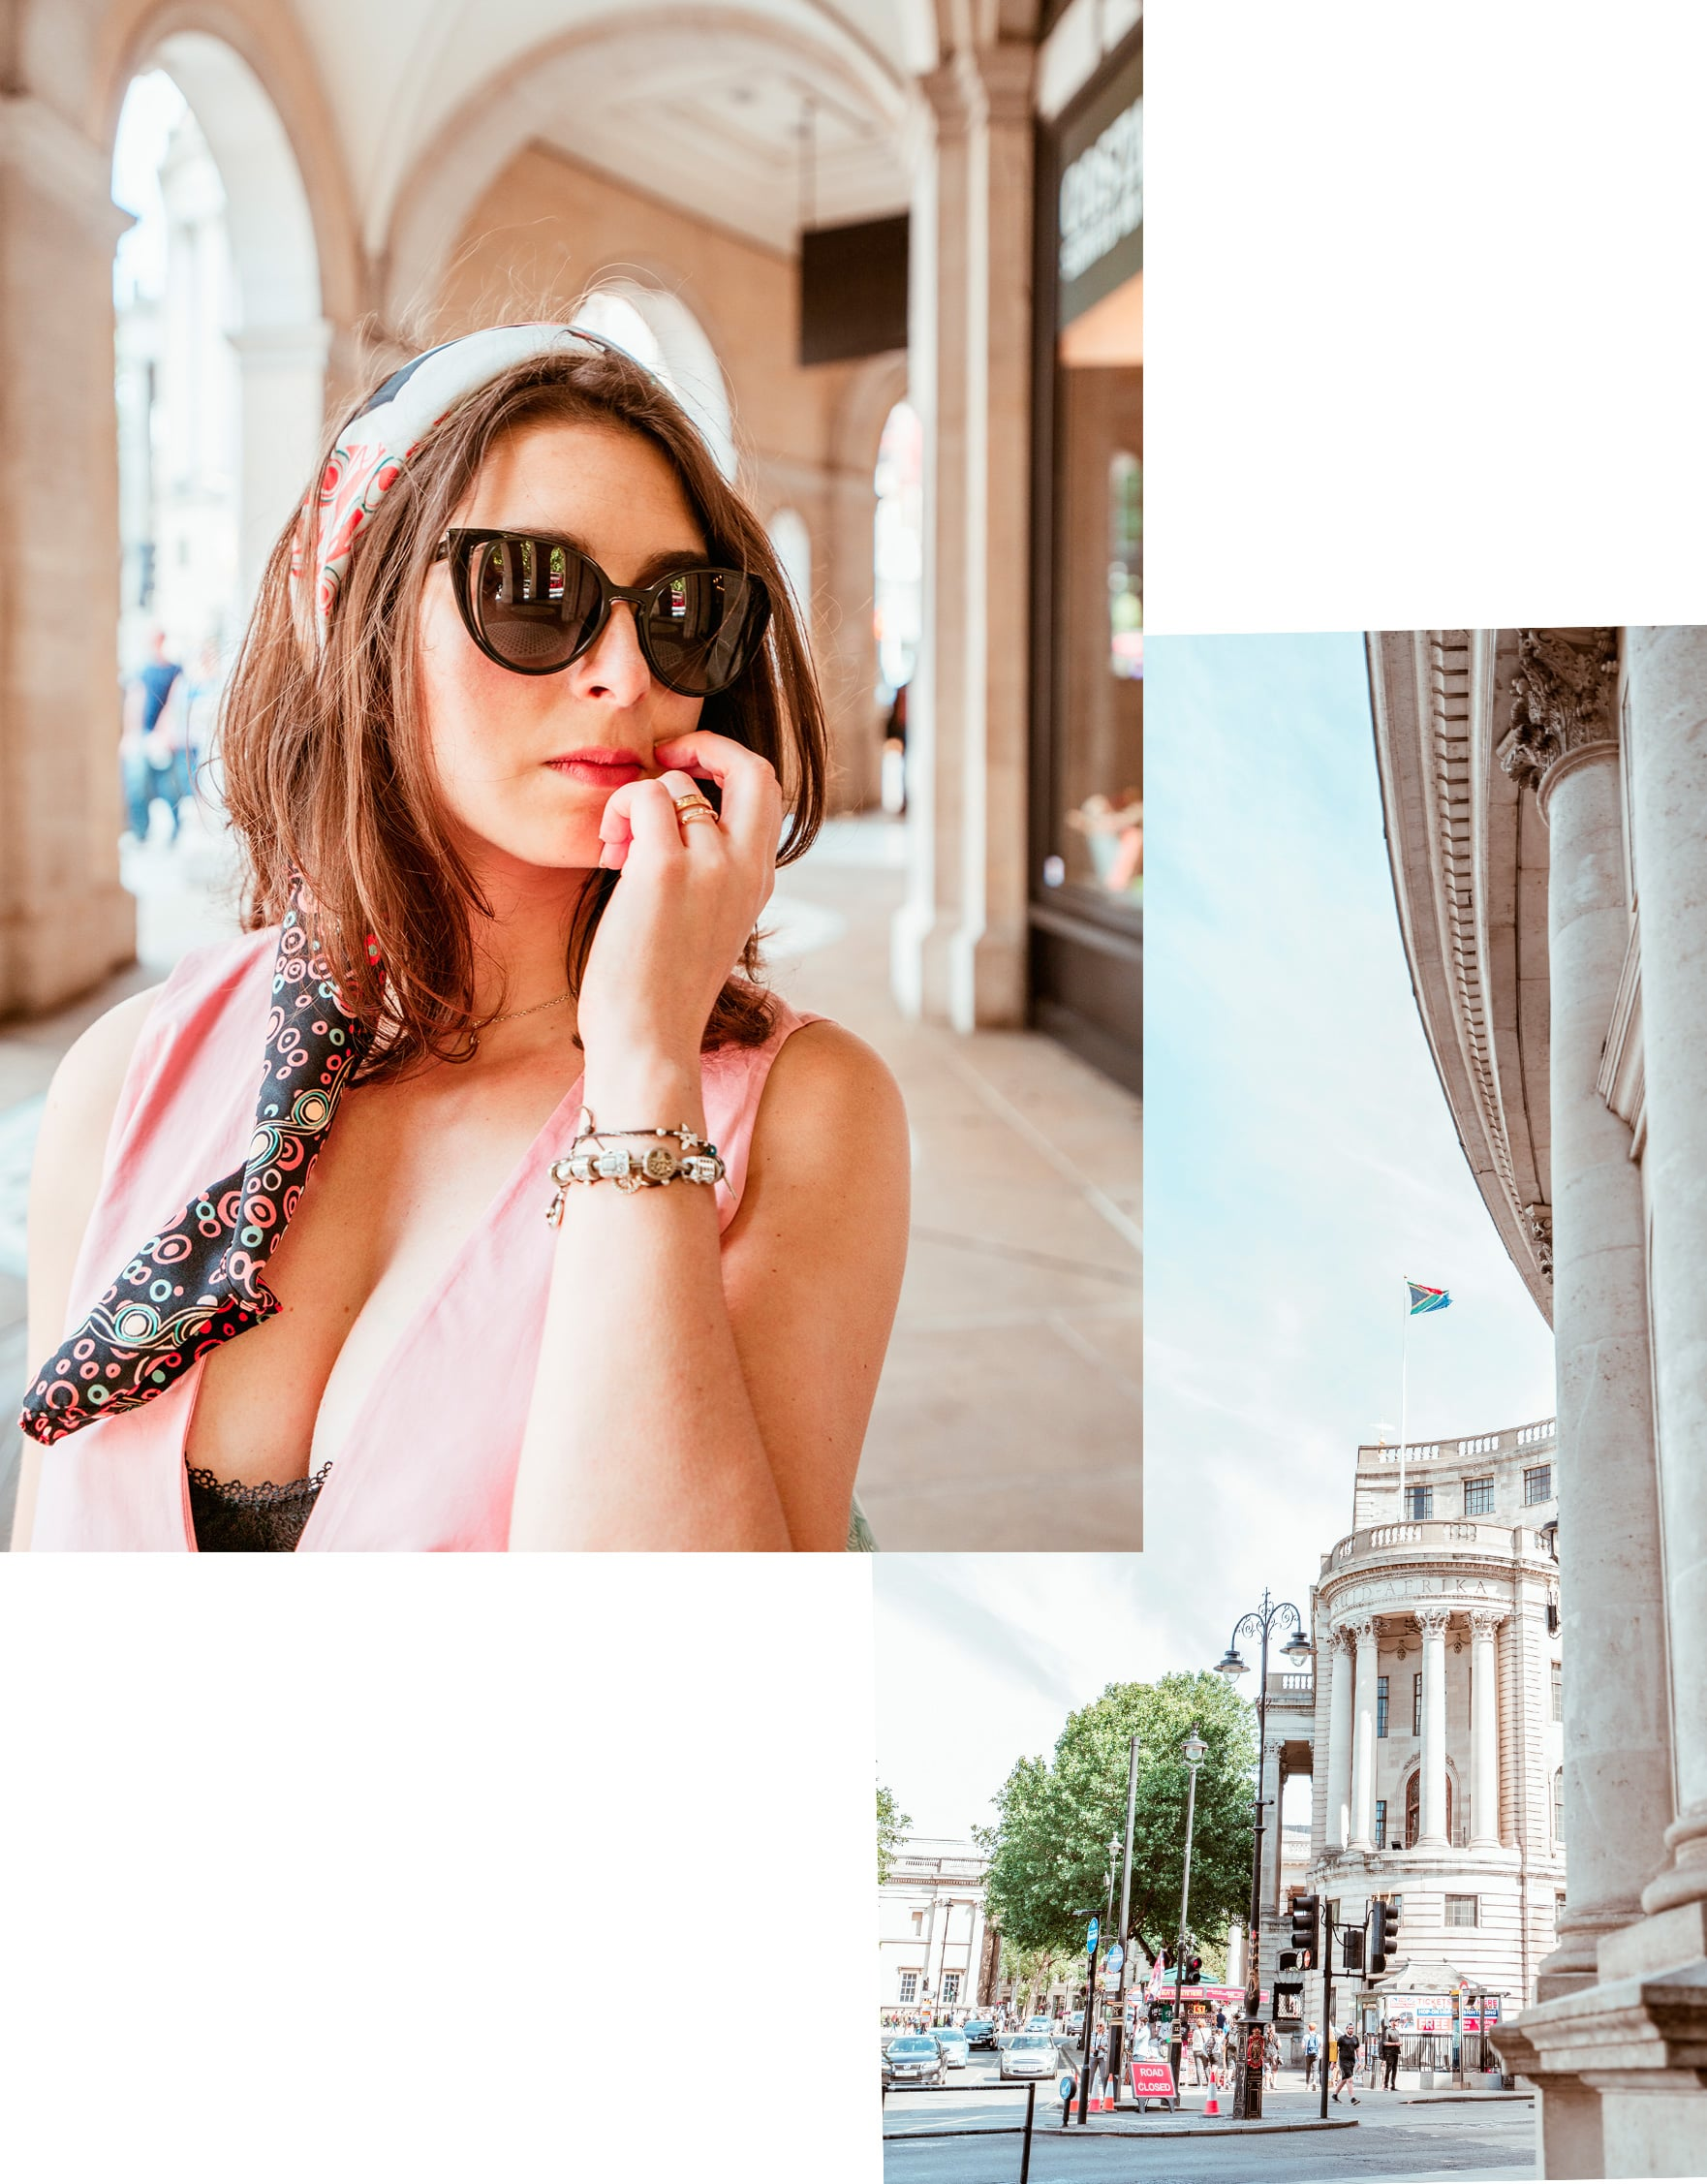 Marisa Oliveira from Arara Pintada wears an Italian Summer Look